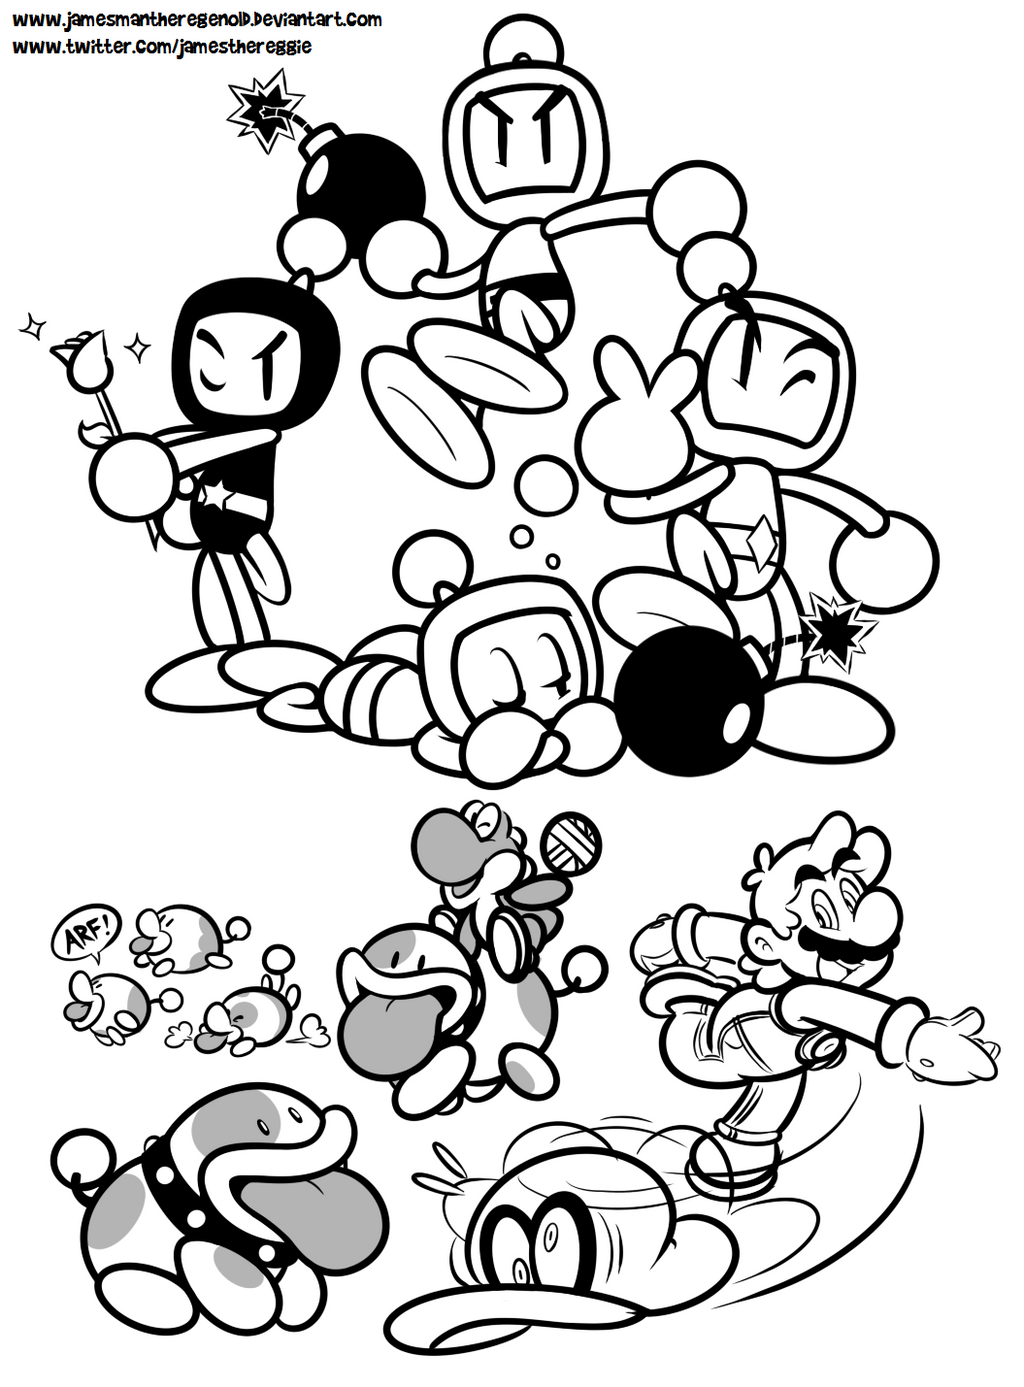 Bomberman coloring pages ~ Poochy and Bomberman's Odyssey by JamesmanTheRegenold on ...